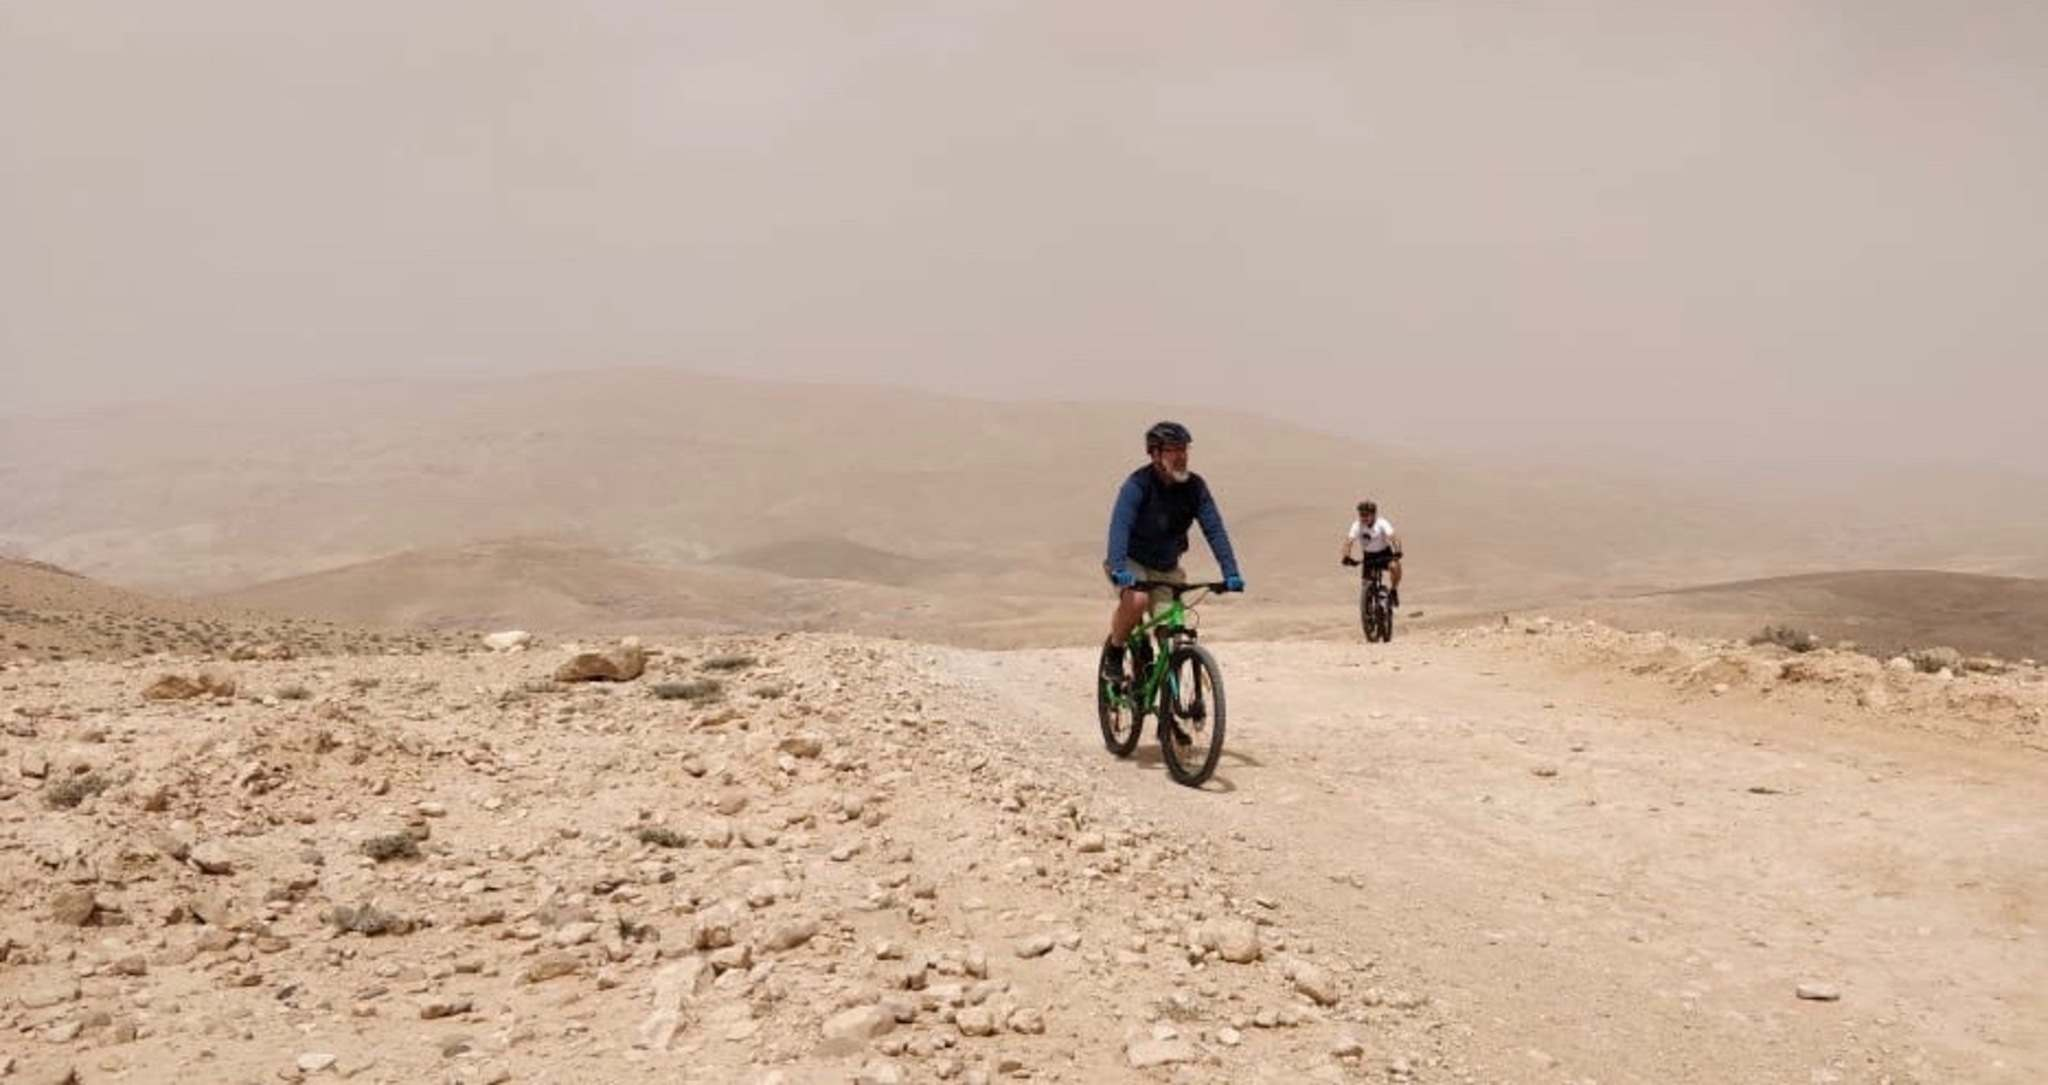 Lyons biking in the Jordanian desert. (Mark Edward Harris photo)